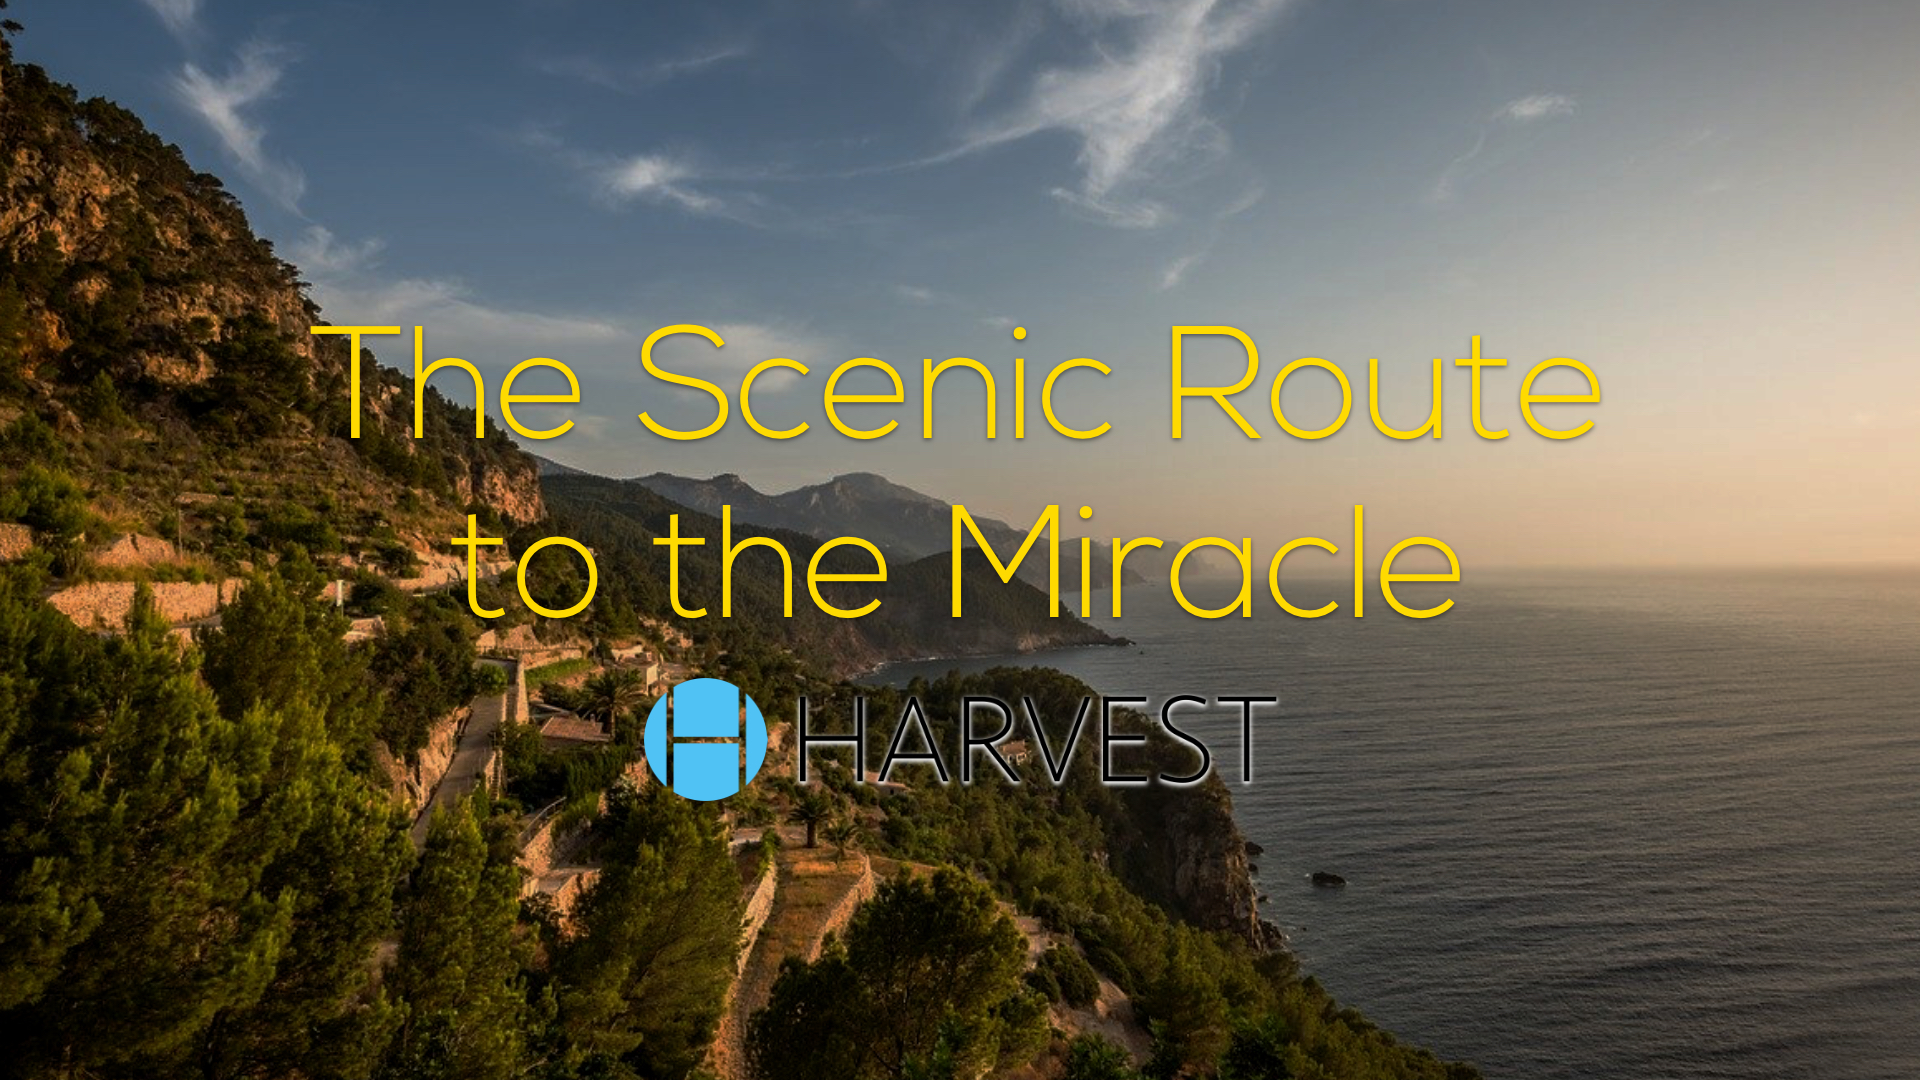 The Scenic Route to the Miracle: Christmas 2020